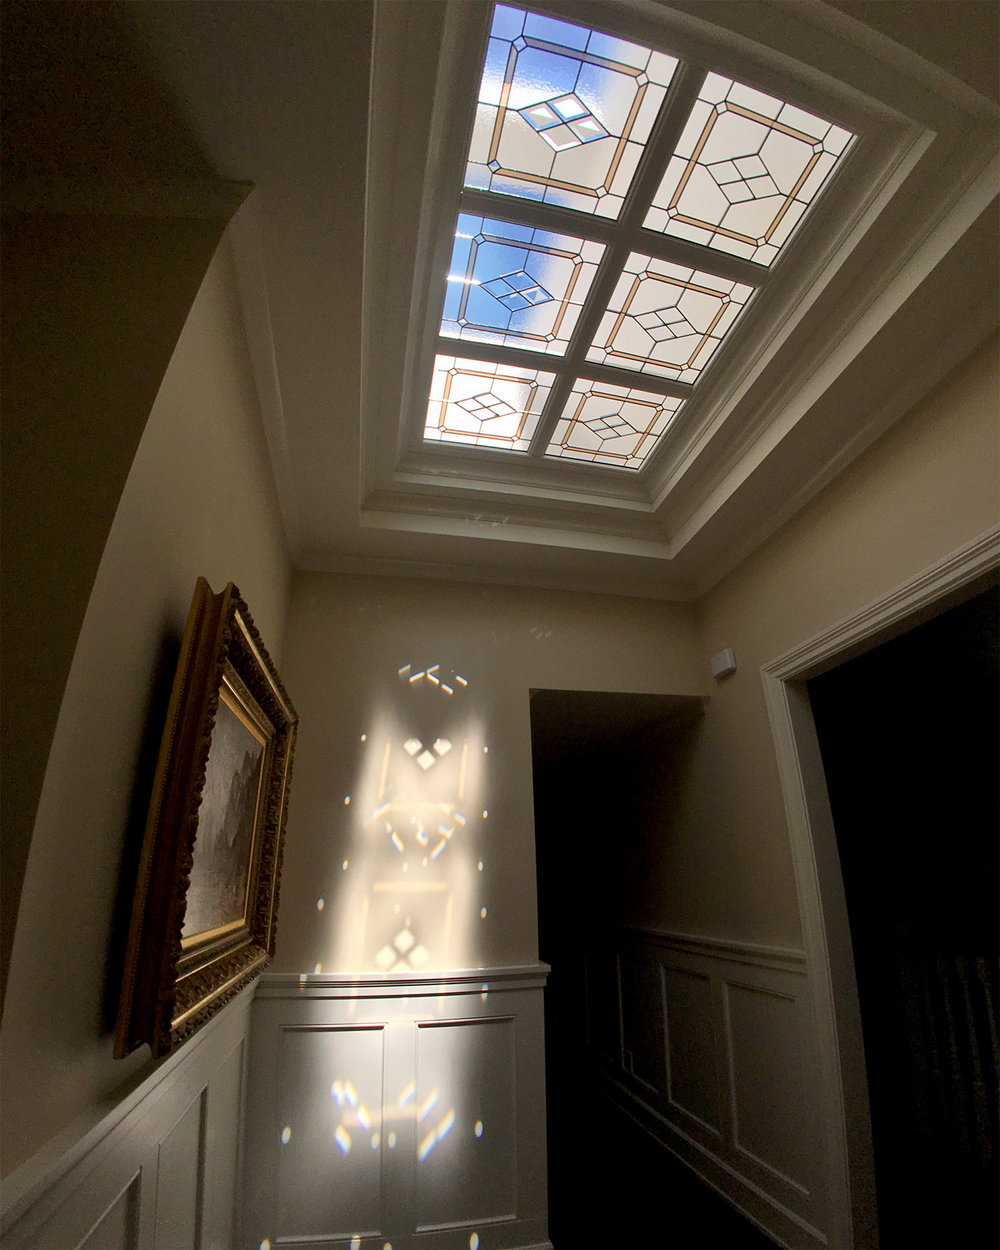 bevel diamond traditional leaded glass stained glass skylight studio palo alto atherton california san francisco san jose legacy glass.jpg